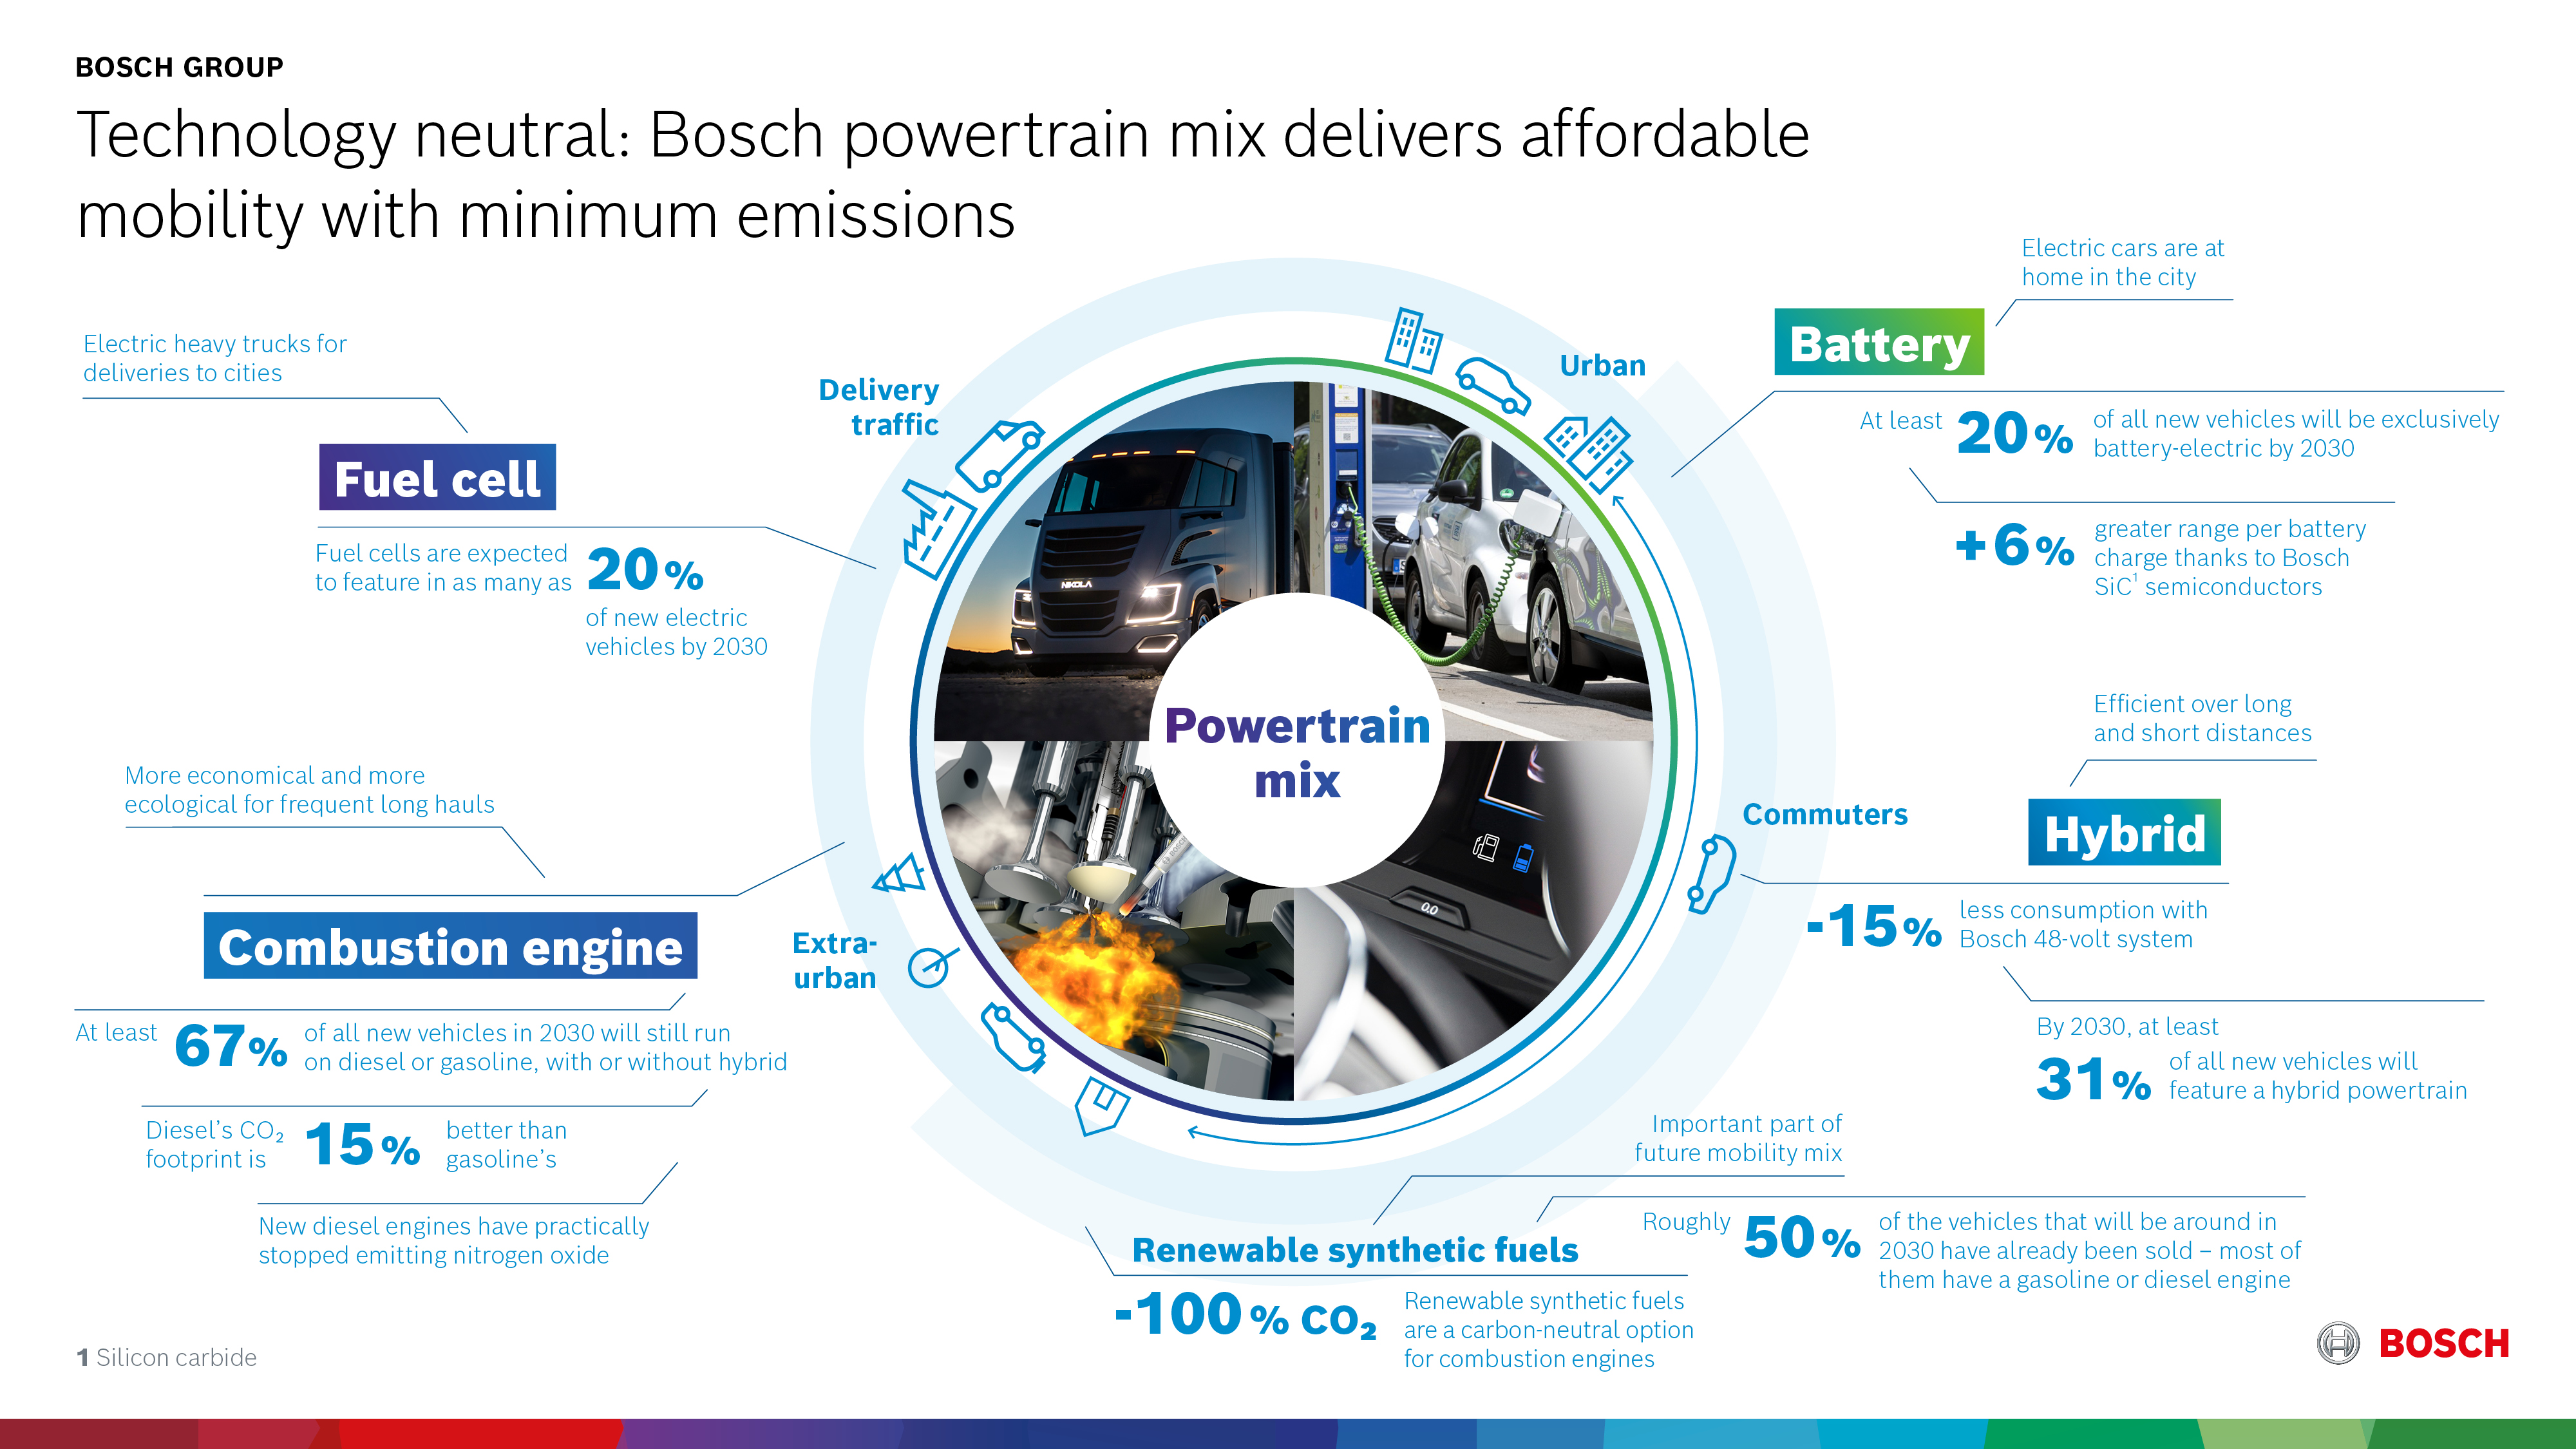 Electrification of the product portfolio: powertrains